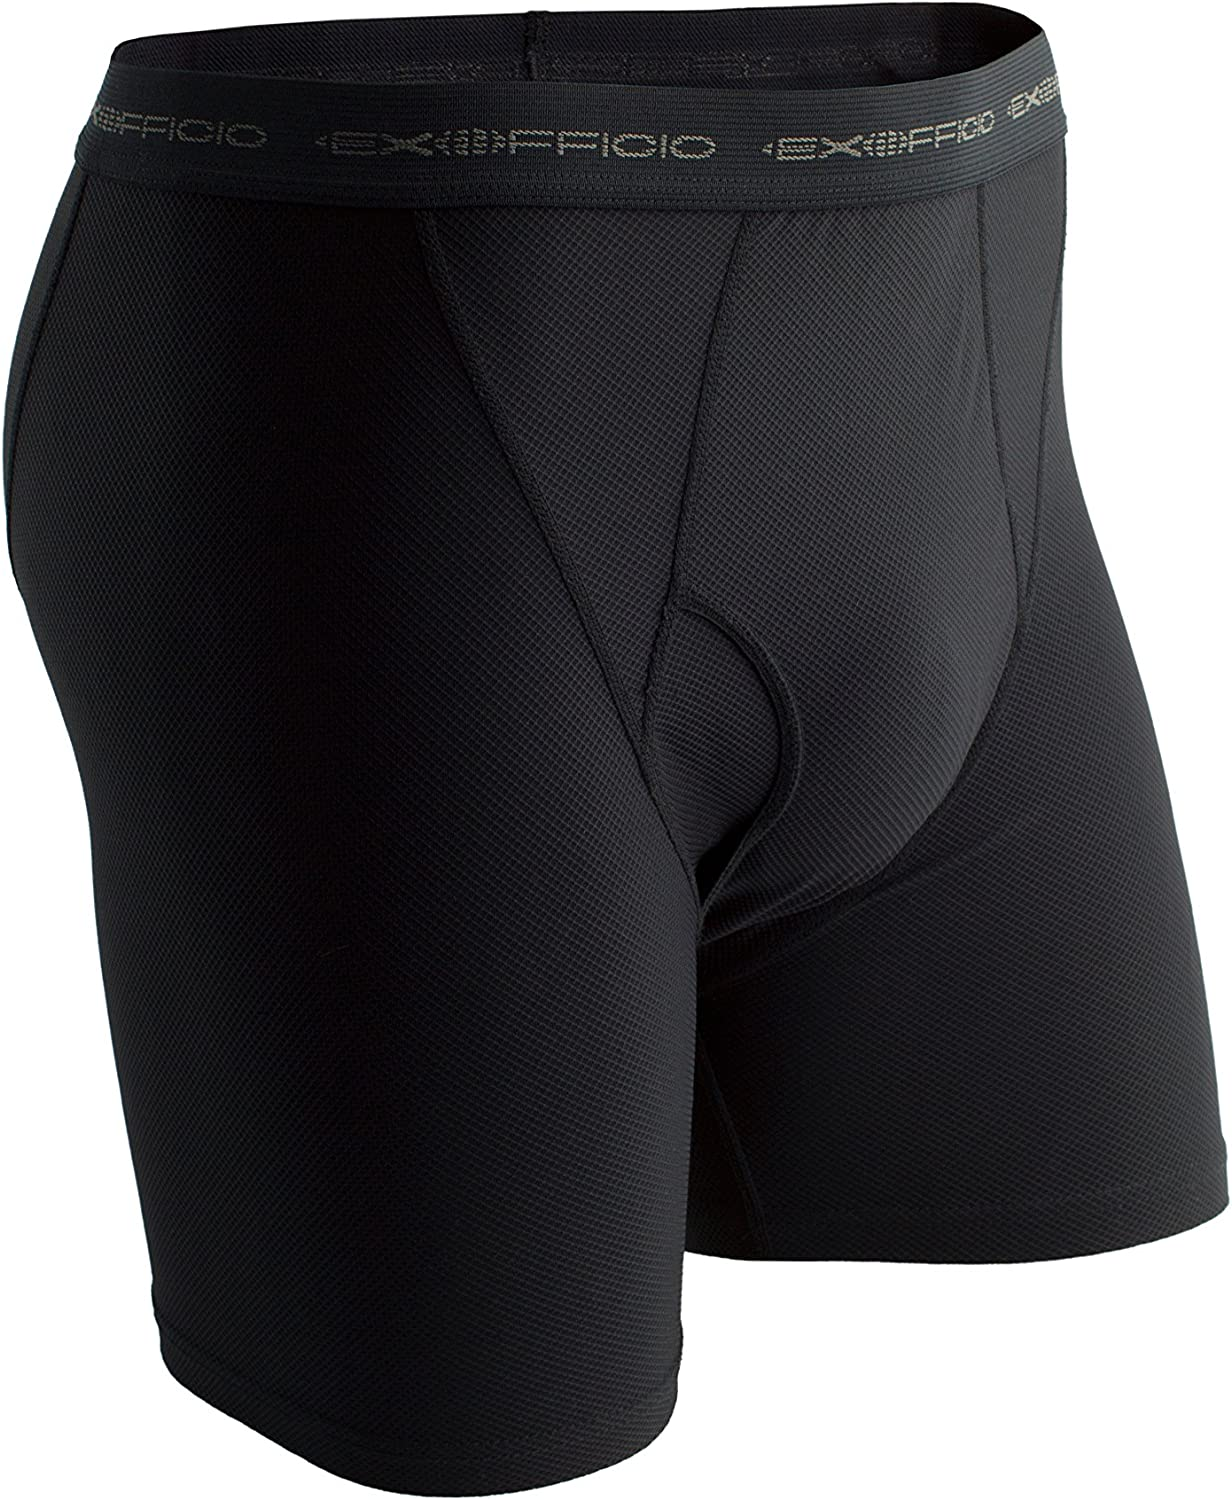 ExOfficio Men's Give-N-Go Boxer Brief: Clothing